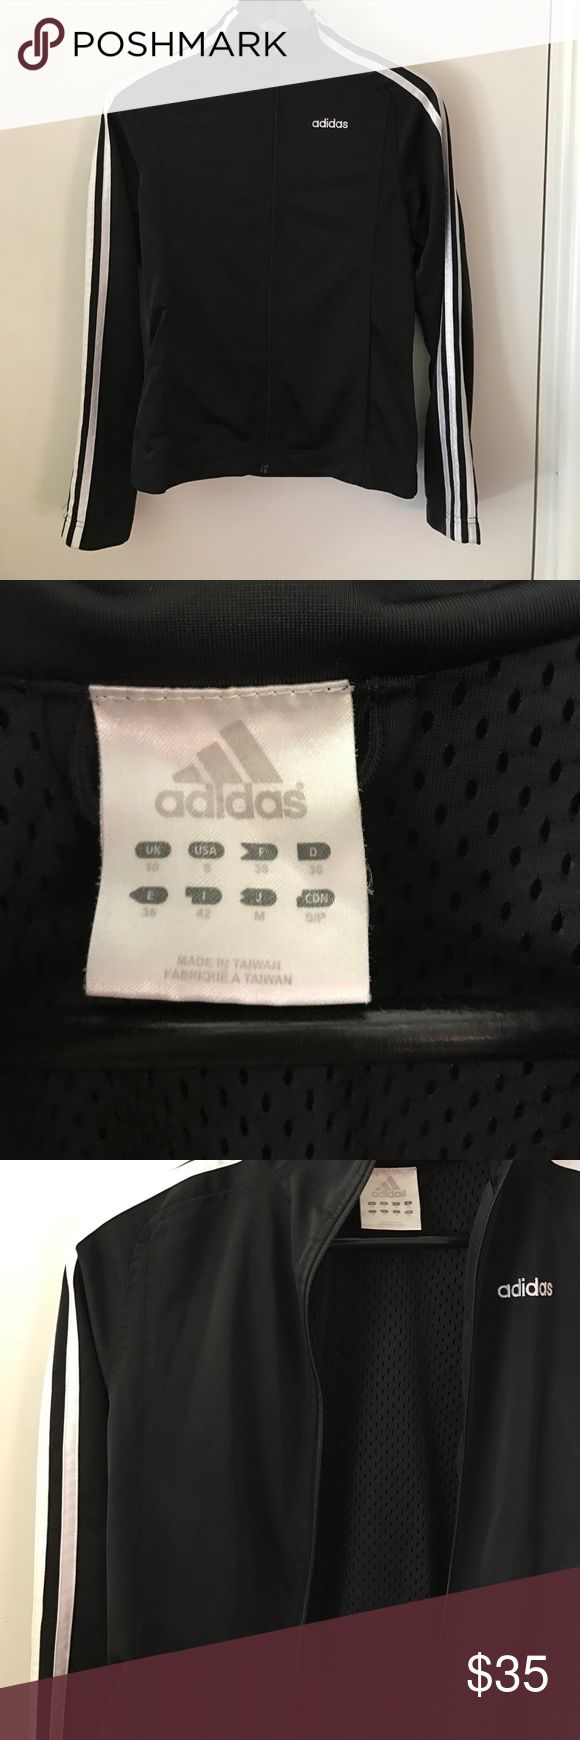 Adidas zip up jacket Standard black adidas jacket with high neck and mesh lining inside. Has signature 3 stripes on sleeves and adidas written on front. In good barely worn condition adidas Jackets & Coats